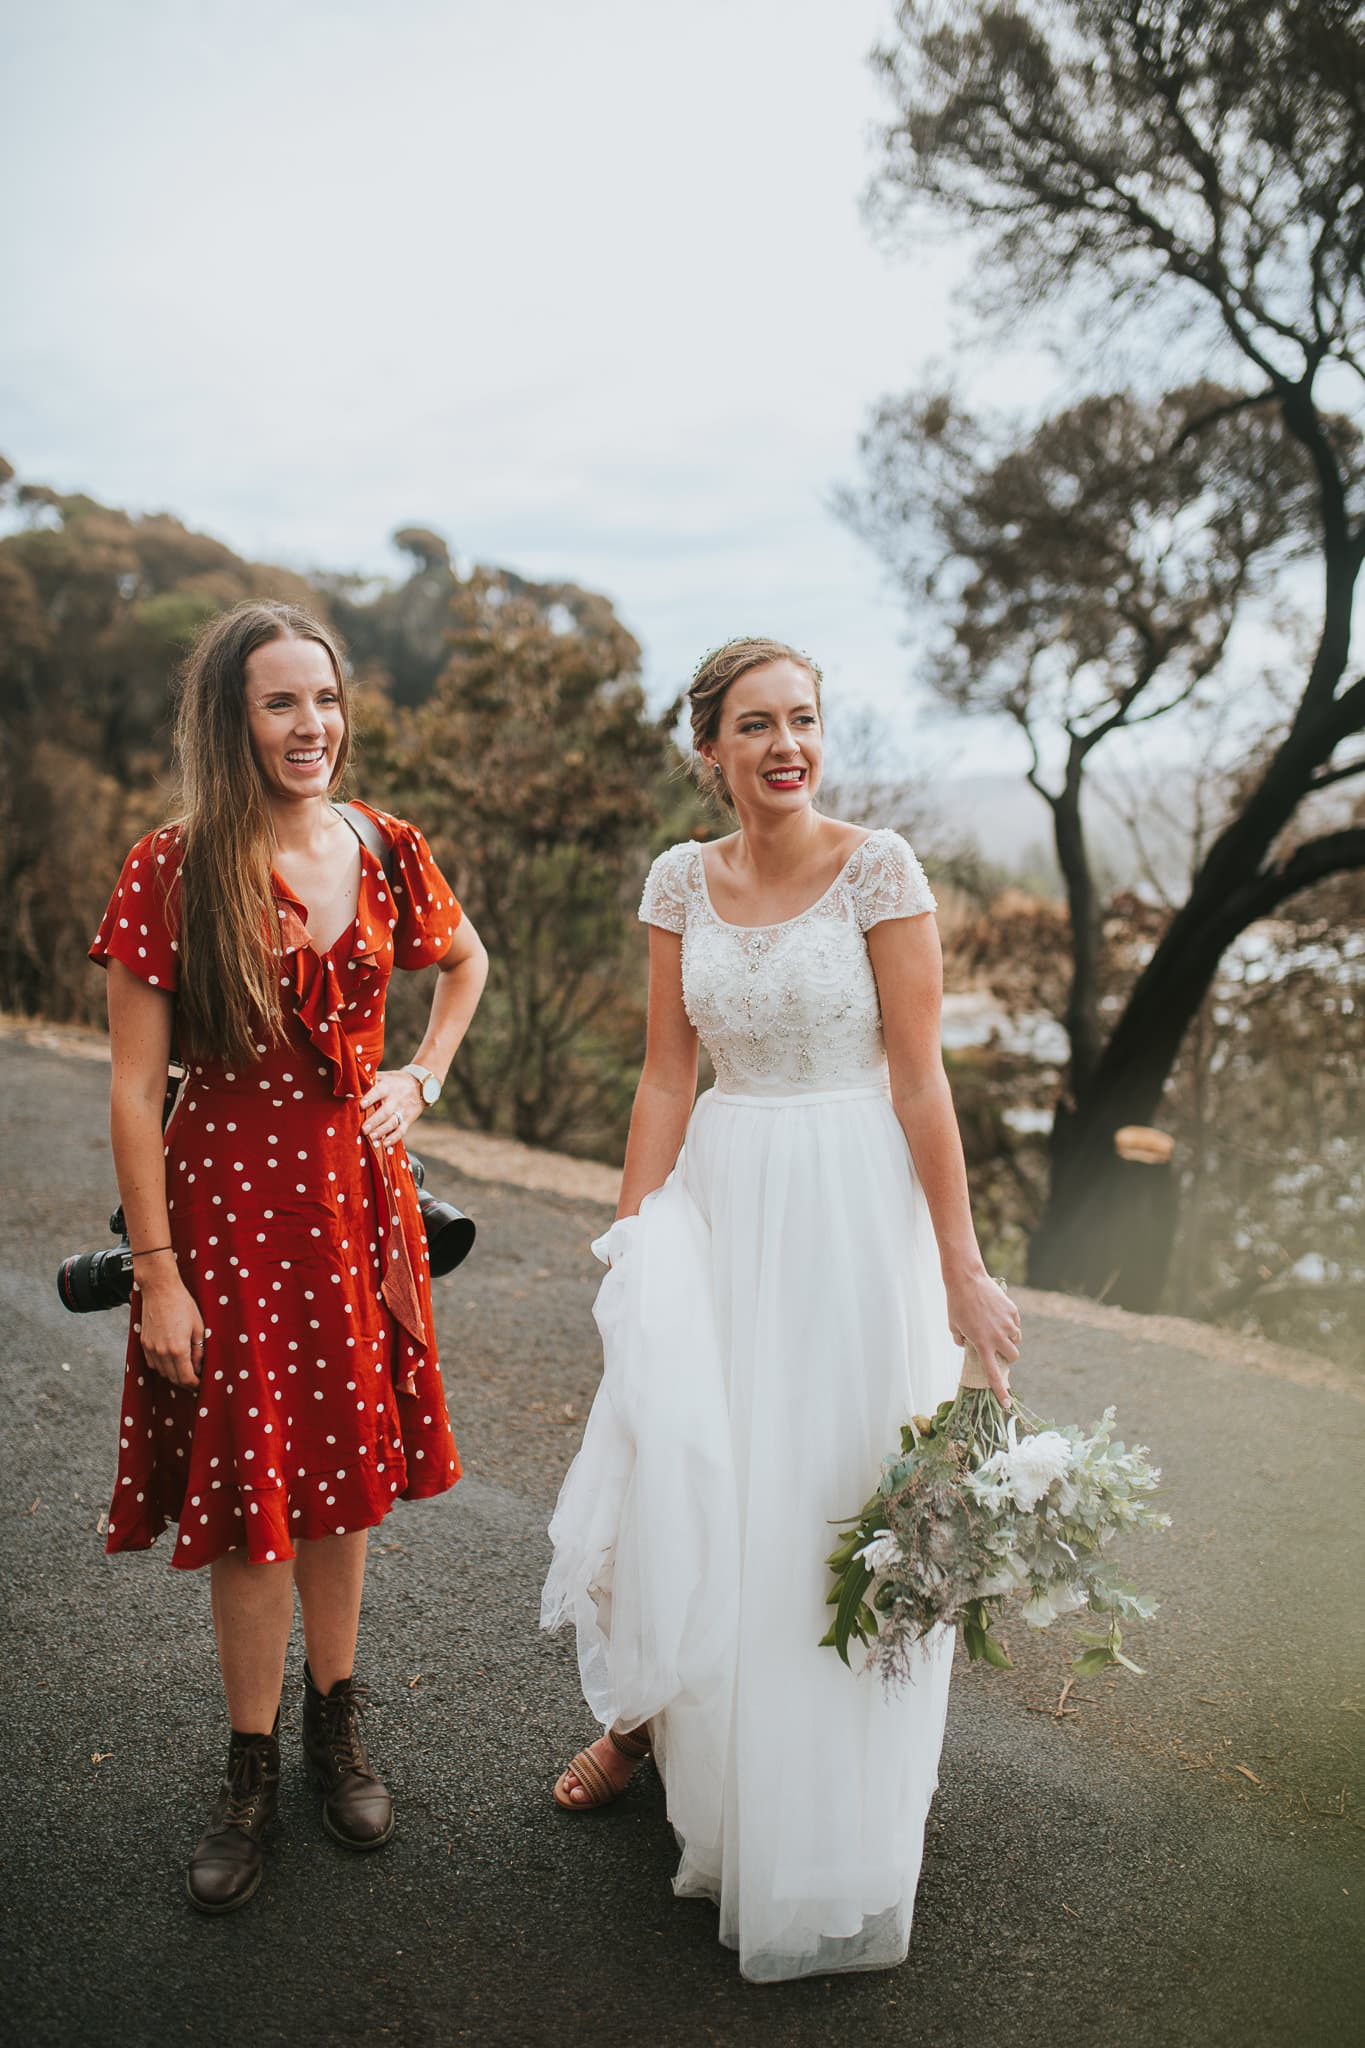 """This wedding was the last of my 2-month journey around Asia / Oceania. If someone asked me """"What is the most spontaneous thing you have ever done in life?"""" This would be it."""